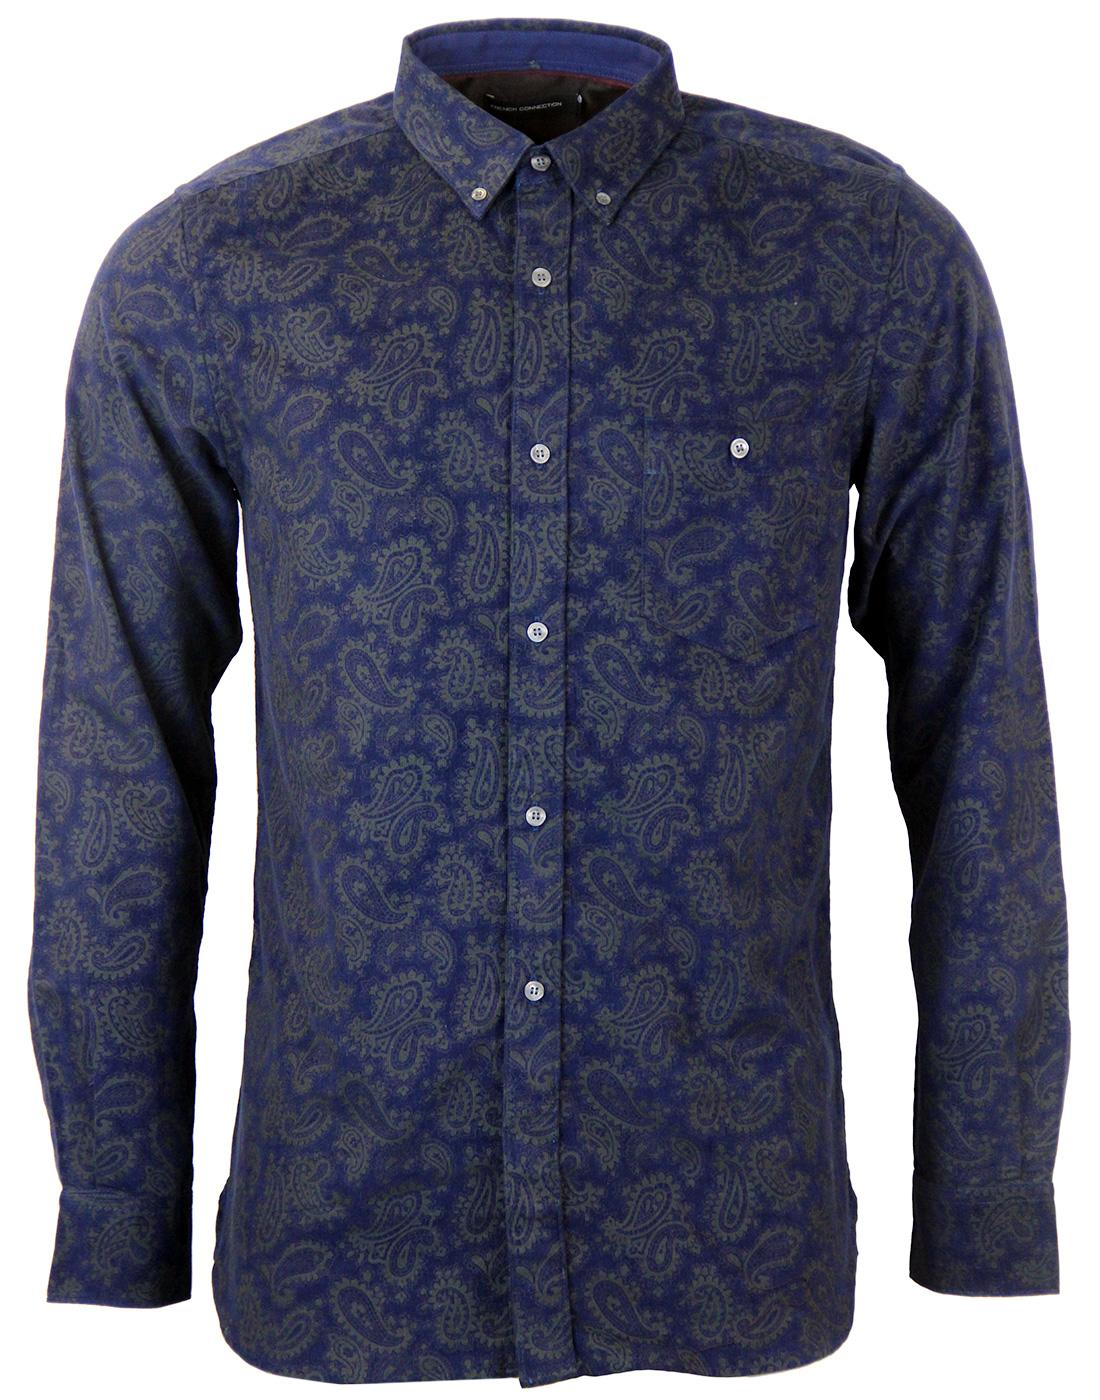 Connery FRENCH CONNECTION Retro Paisley Cord Shirt